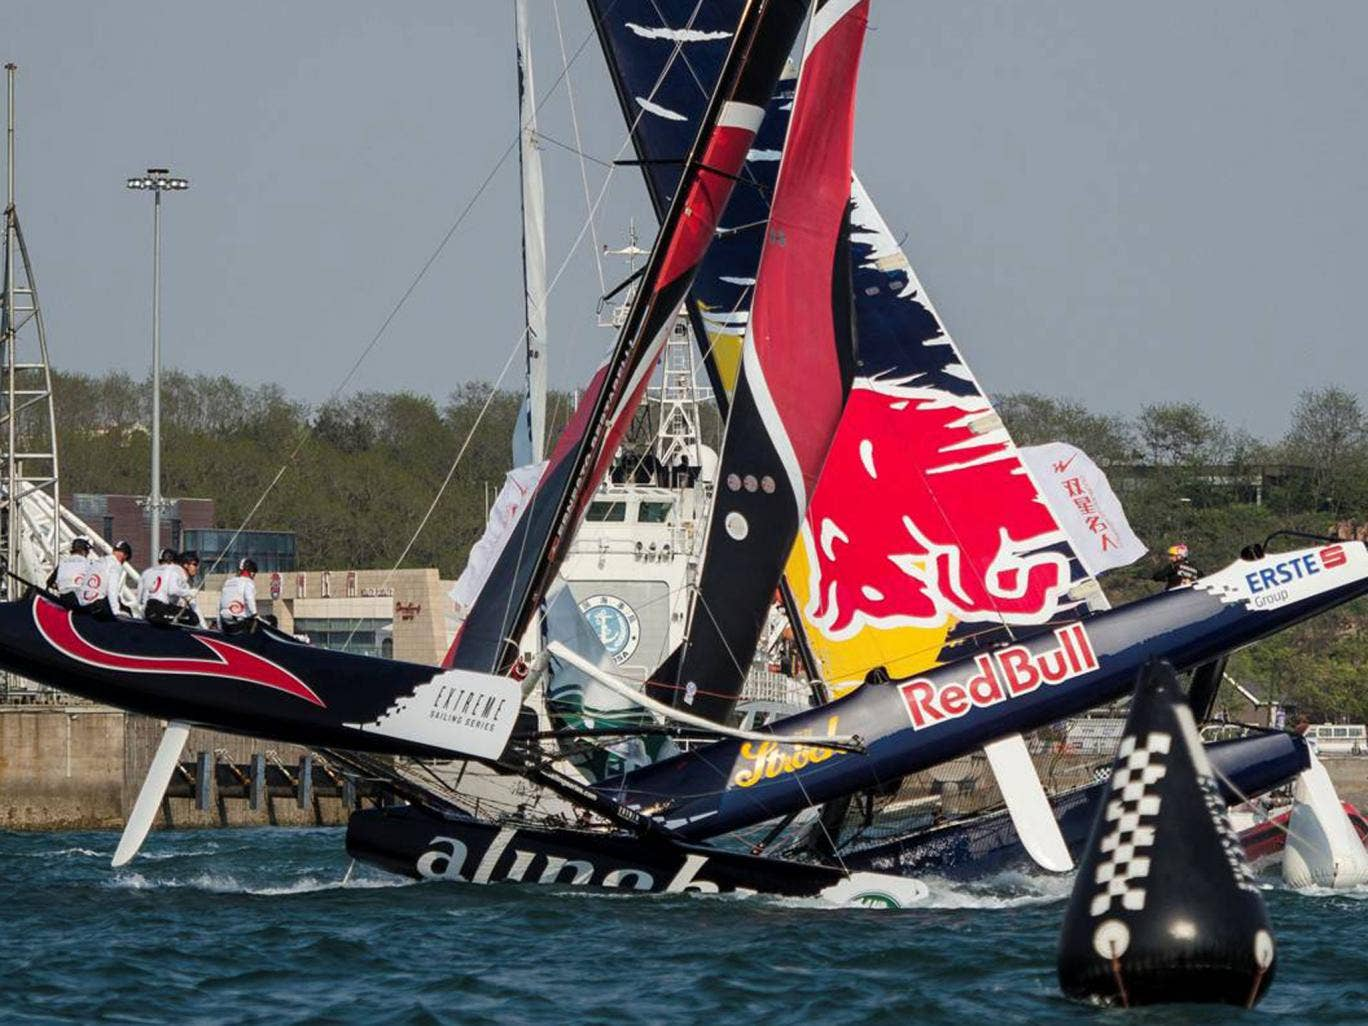 The Red Bull had regatta winner Alinghi on its horns on the final day of the Extreme Sailing Series in Qingdao, China